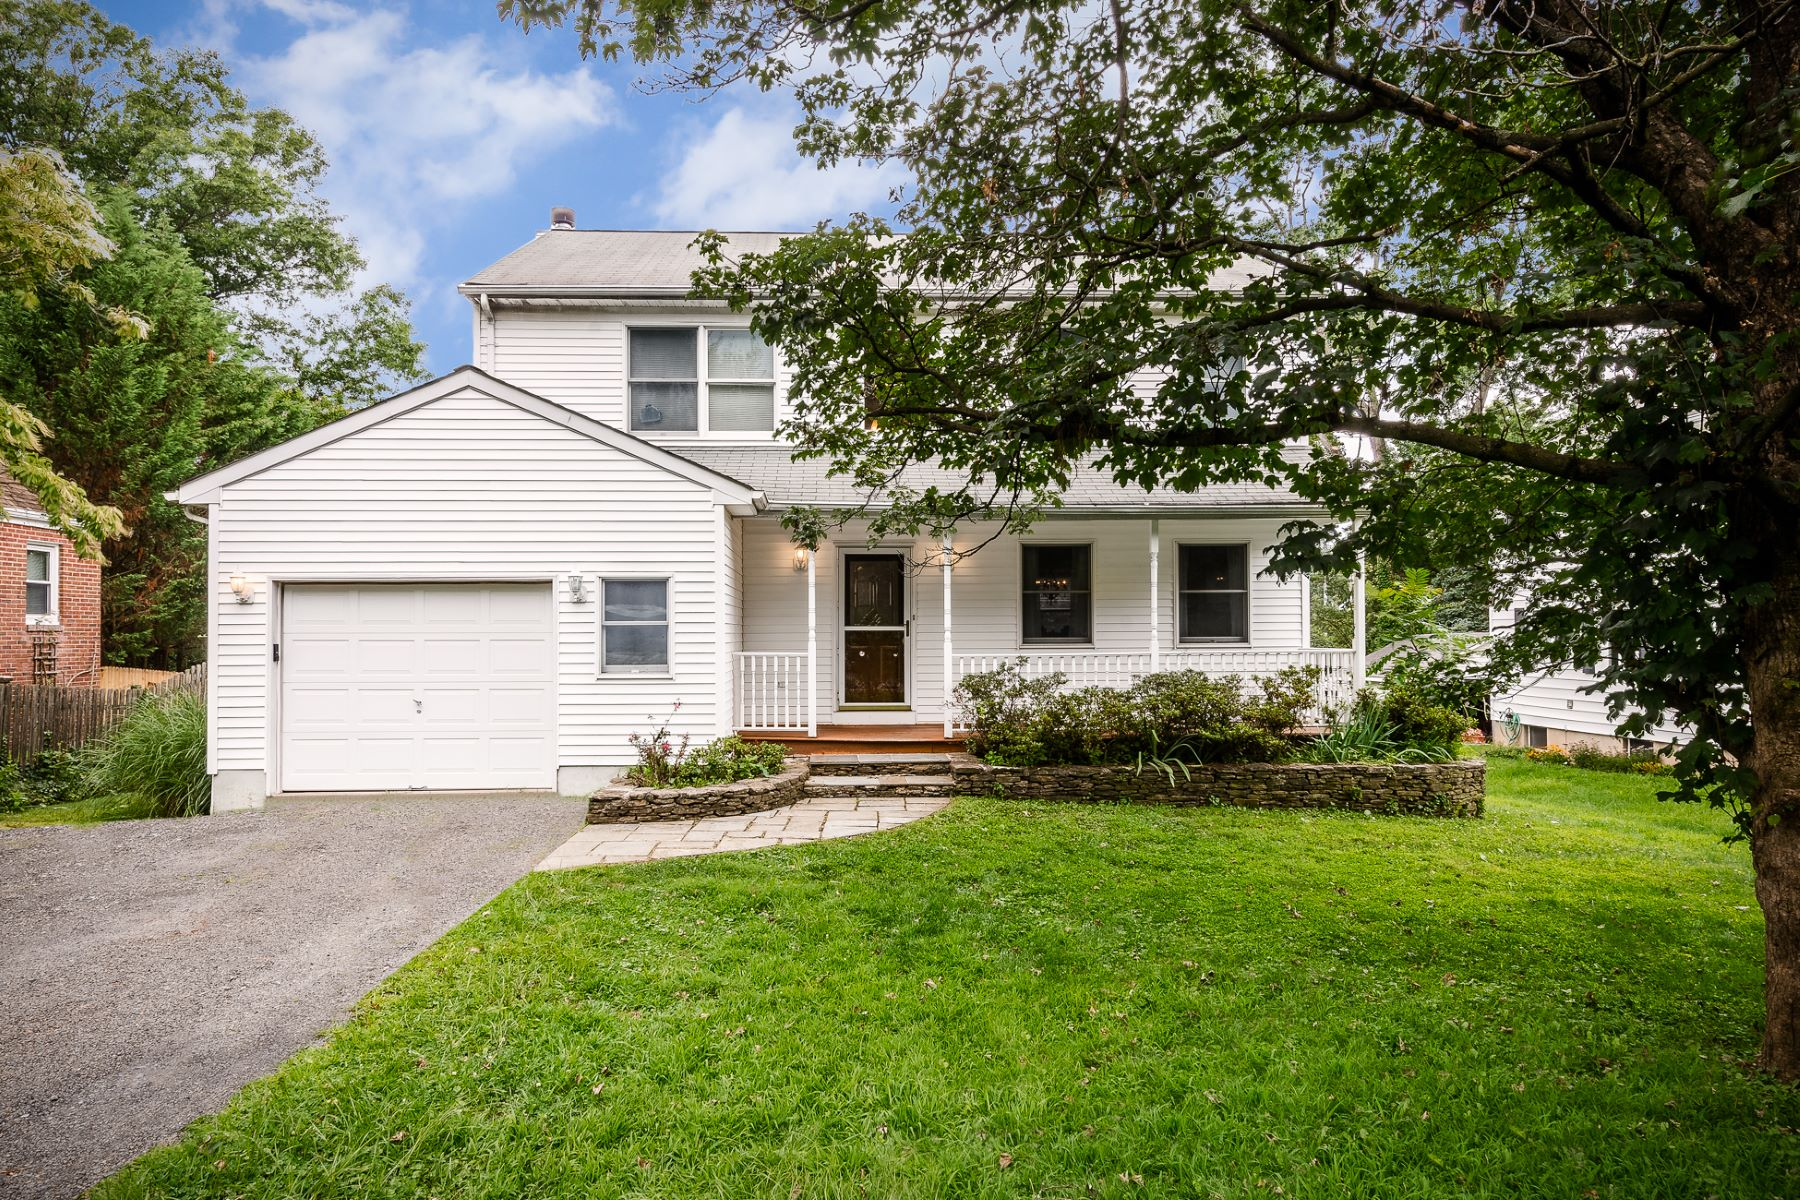 Property for Sale at A Commuter's Dream 12 Scott Avenue, West Windsor, New Jersey 08550 United States